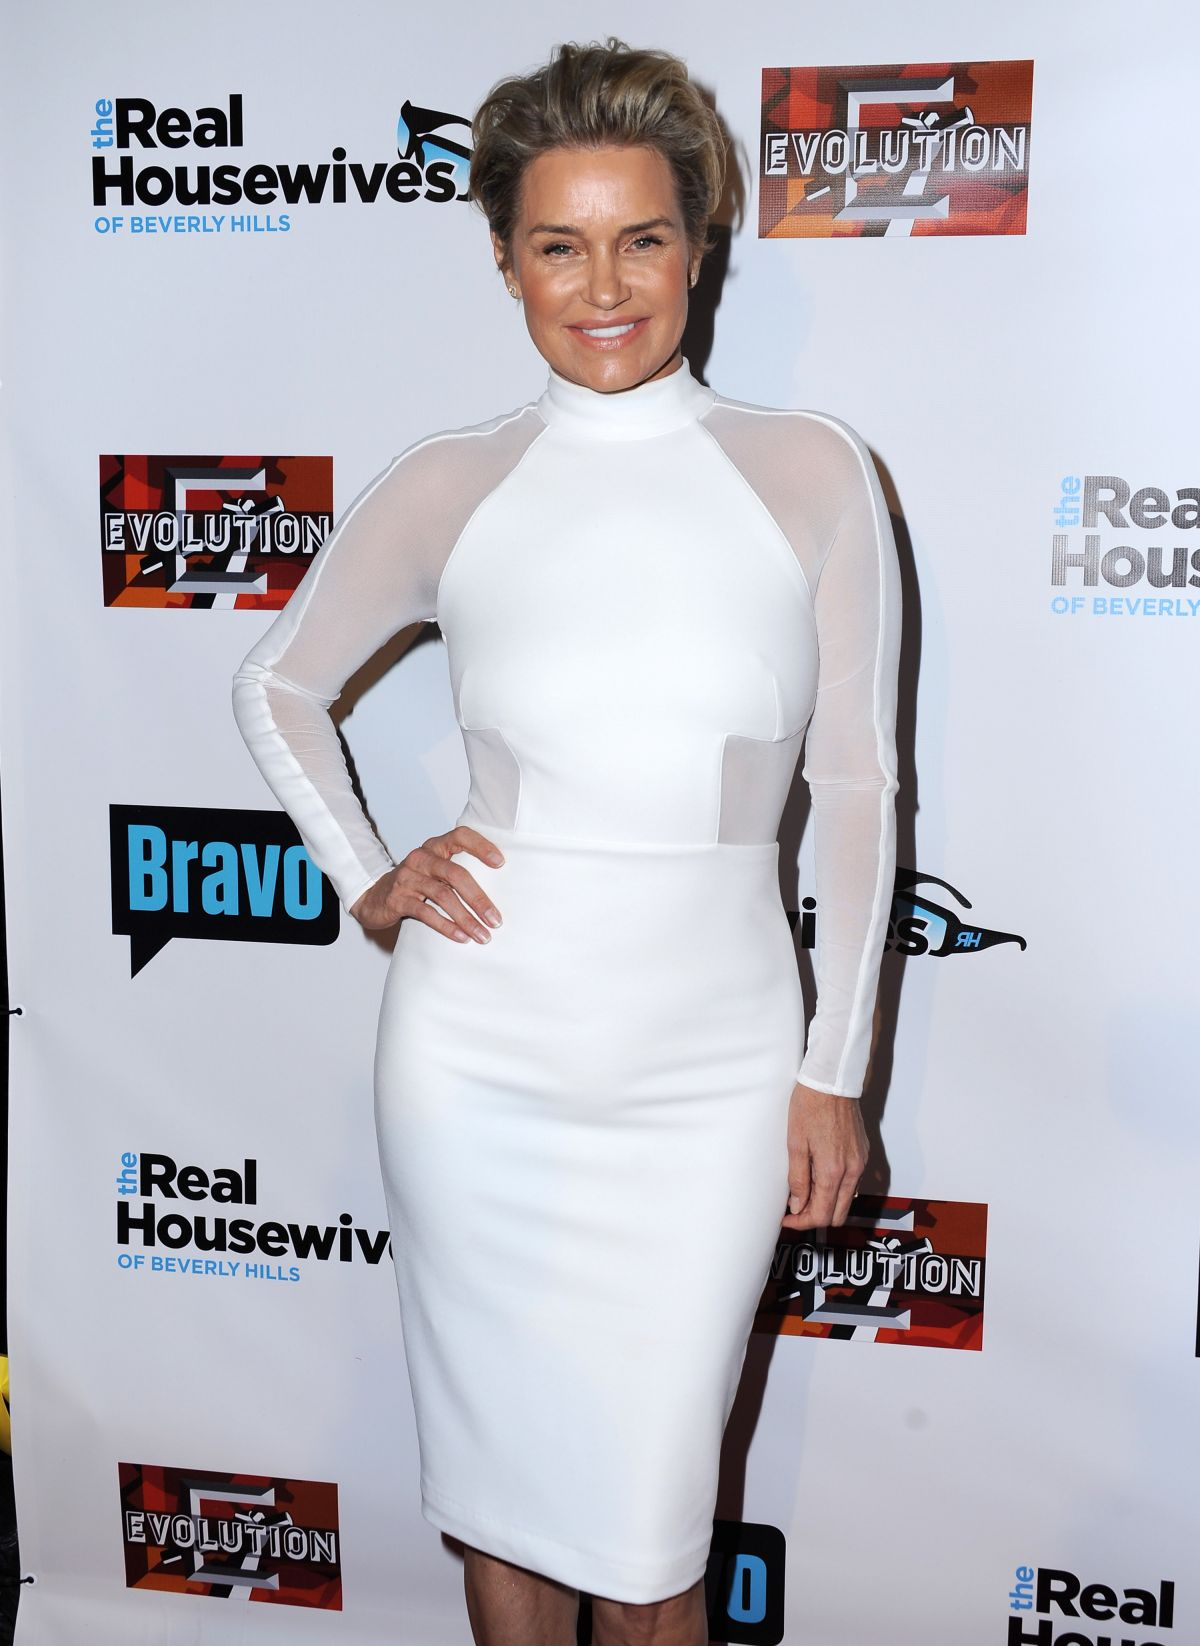 YOLANDA FOSTER at The Real Housewives of Beverly Hills, Season 6 Premiere Party in Hollywood 12/03/2015